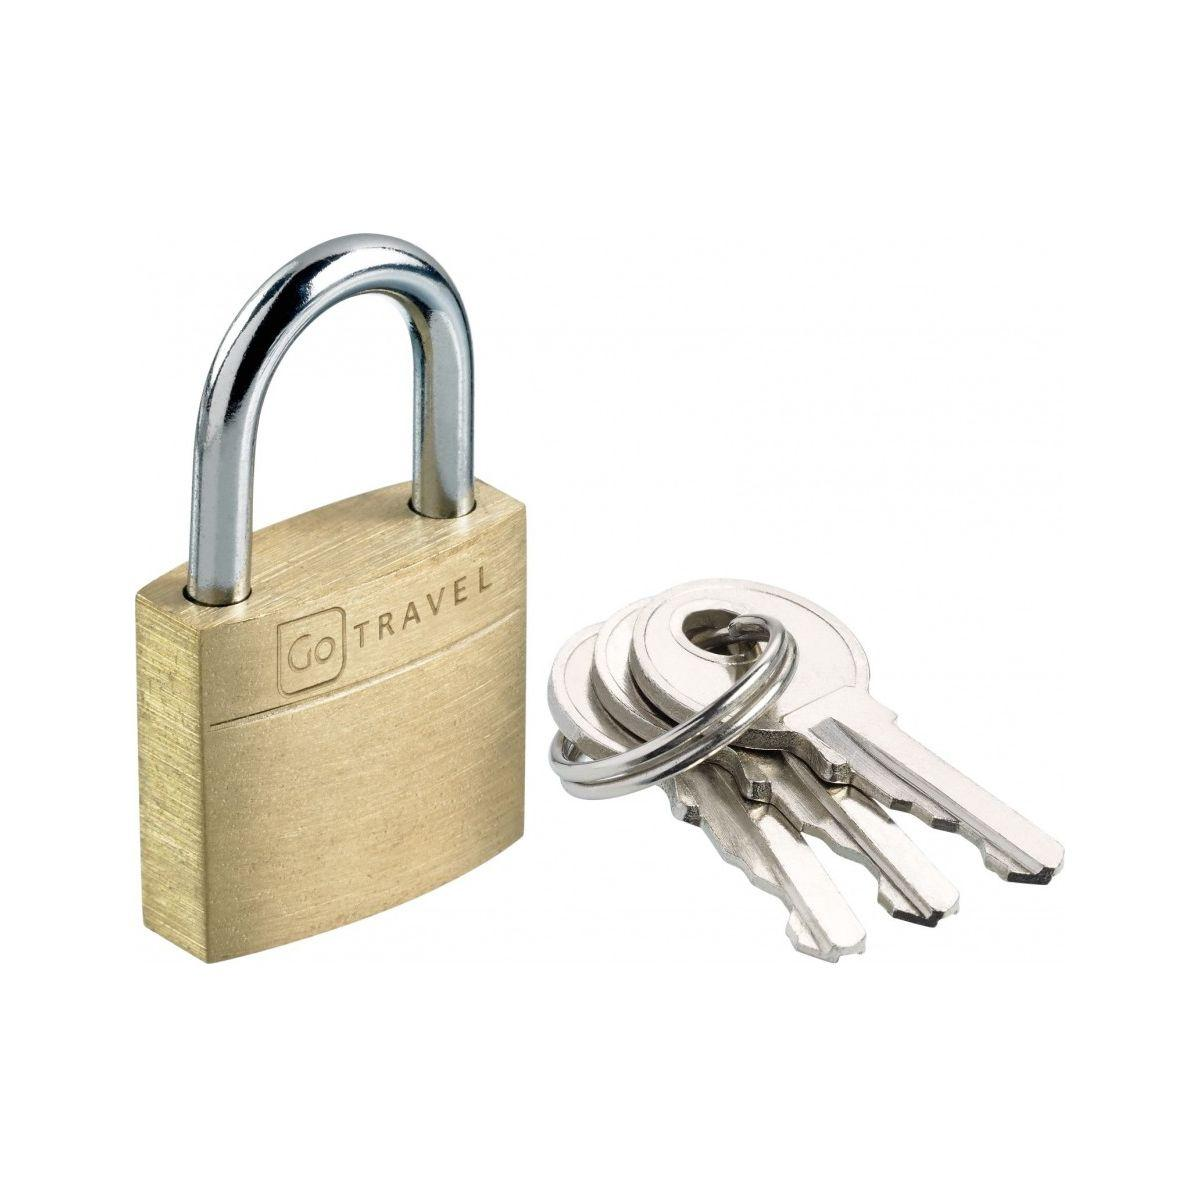 Accessoire go travel cadenas en laiton (photo)